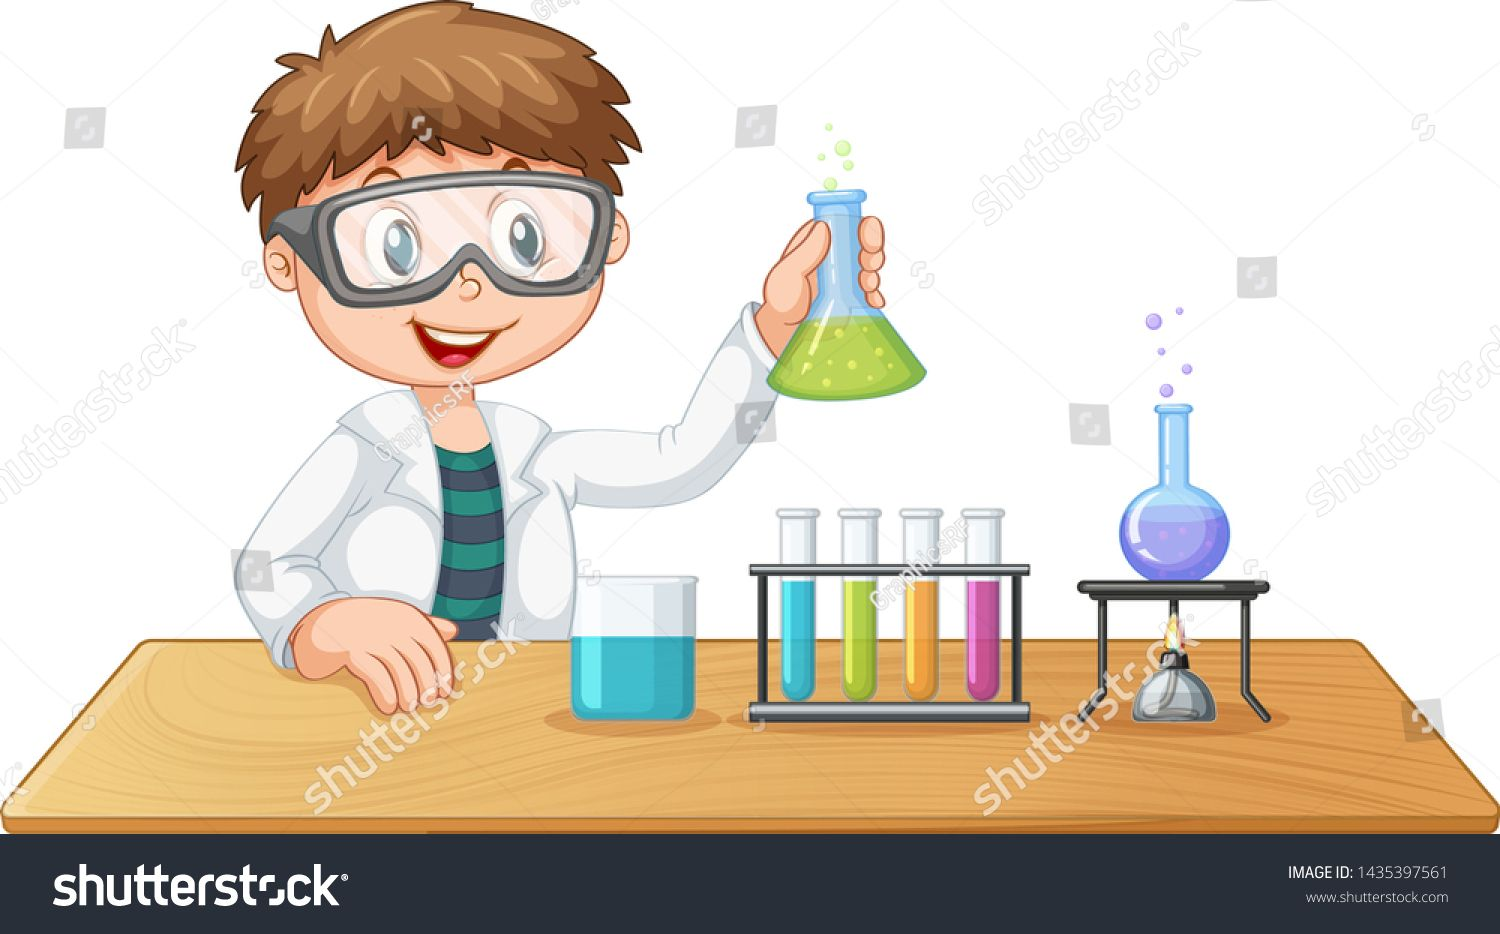 A Boy In Chemistry Class Illustration Ad Sponsored Chemistry Boy Illustration Class Boy Illustration Chemistry Class Chemistry